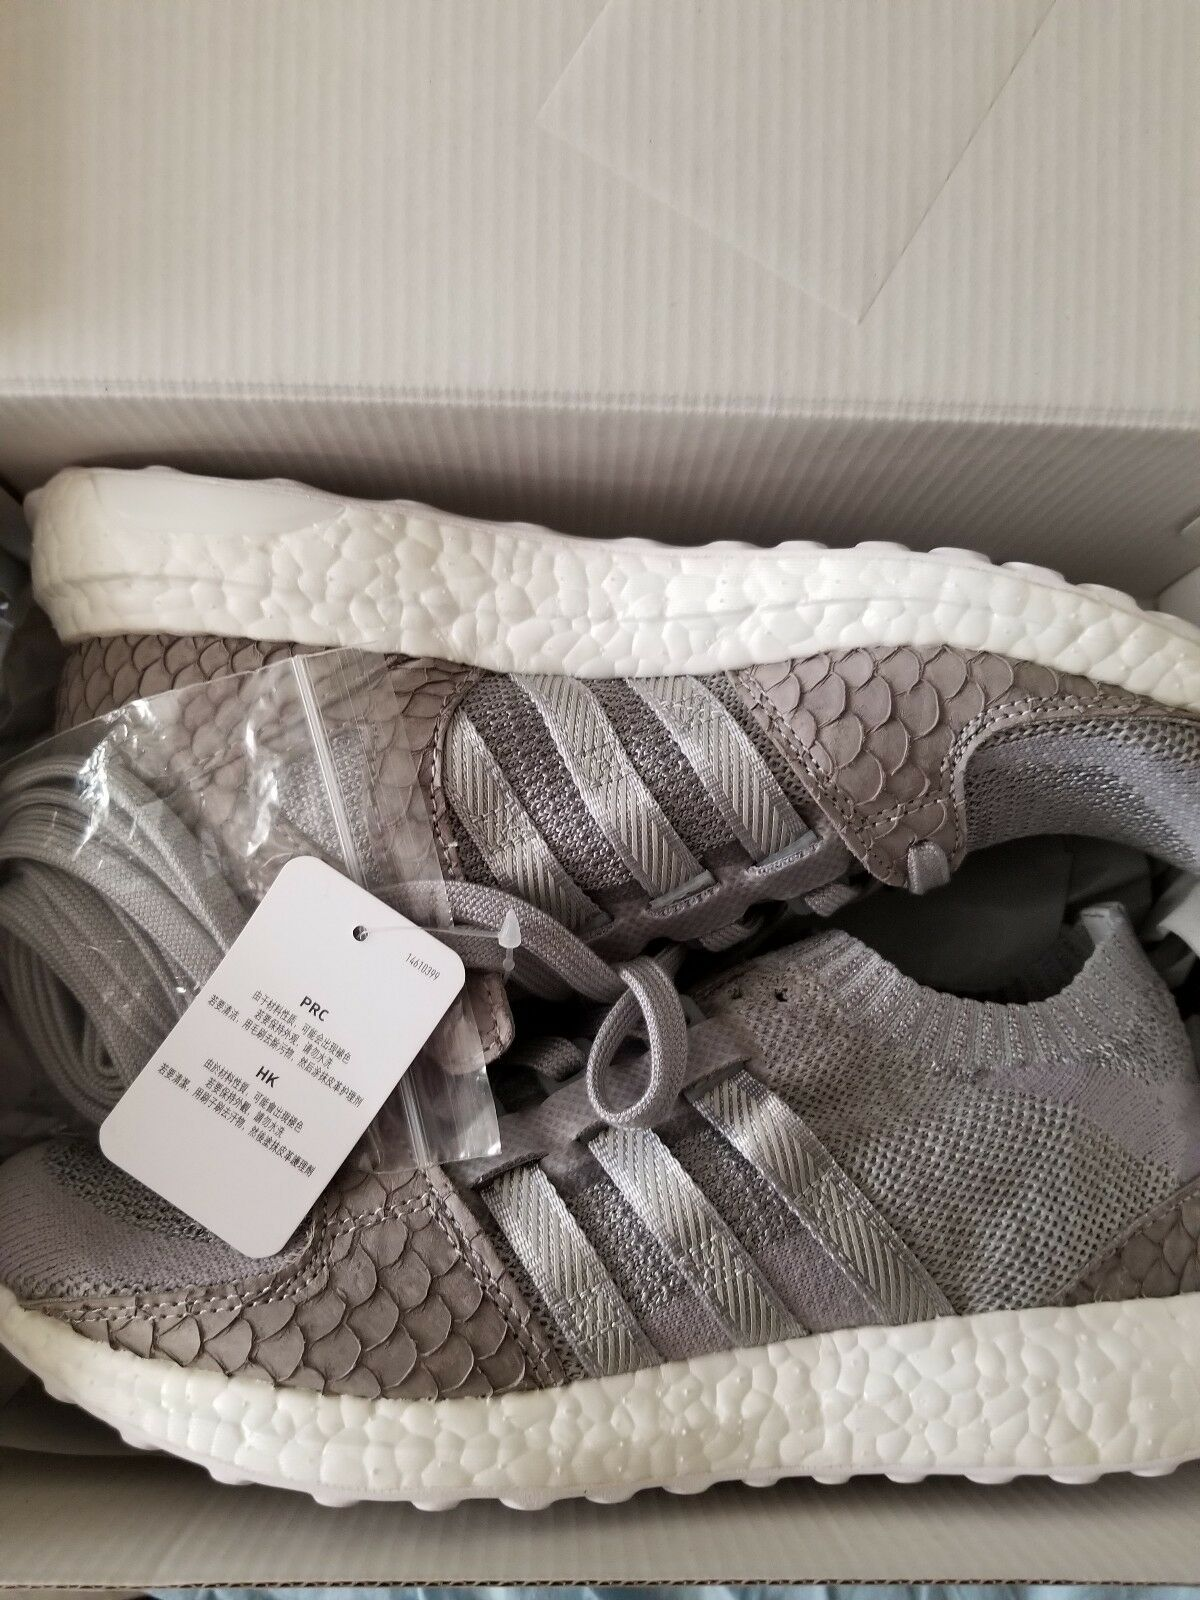 Adidas eqt support ultra pk Size 8